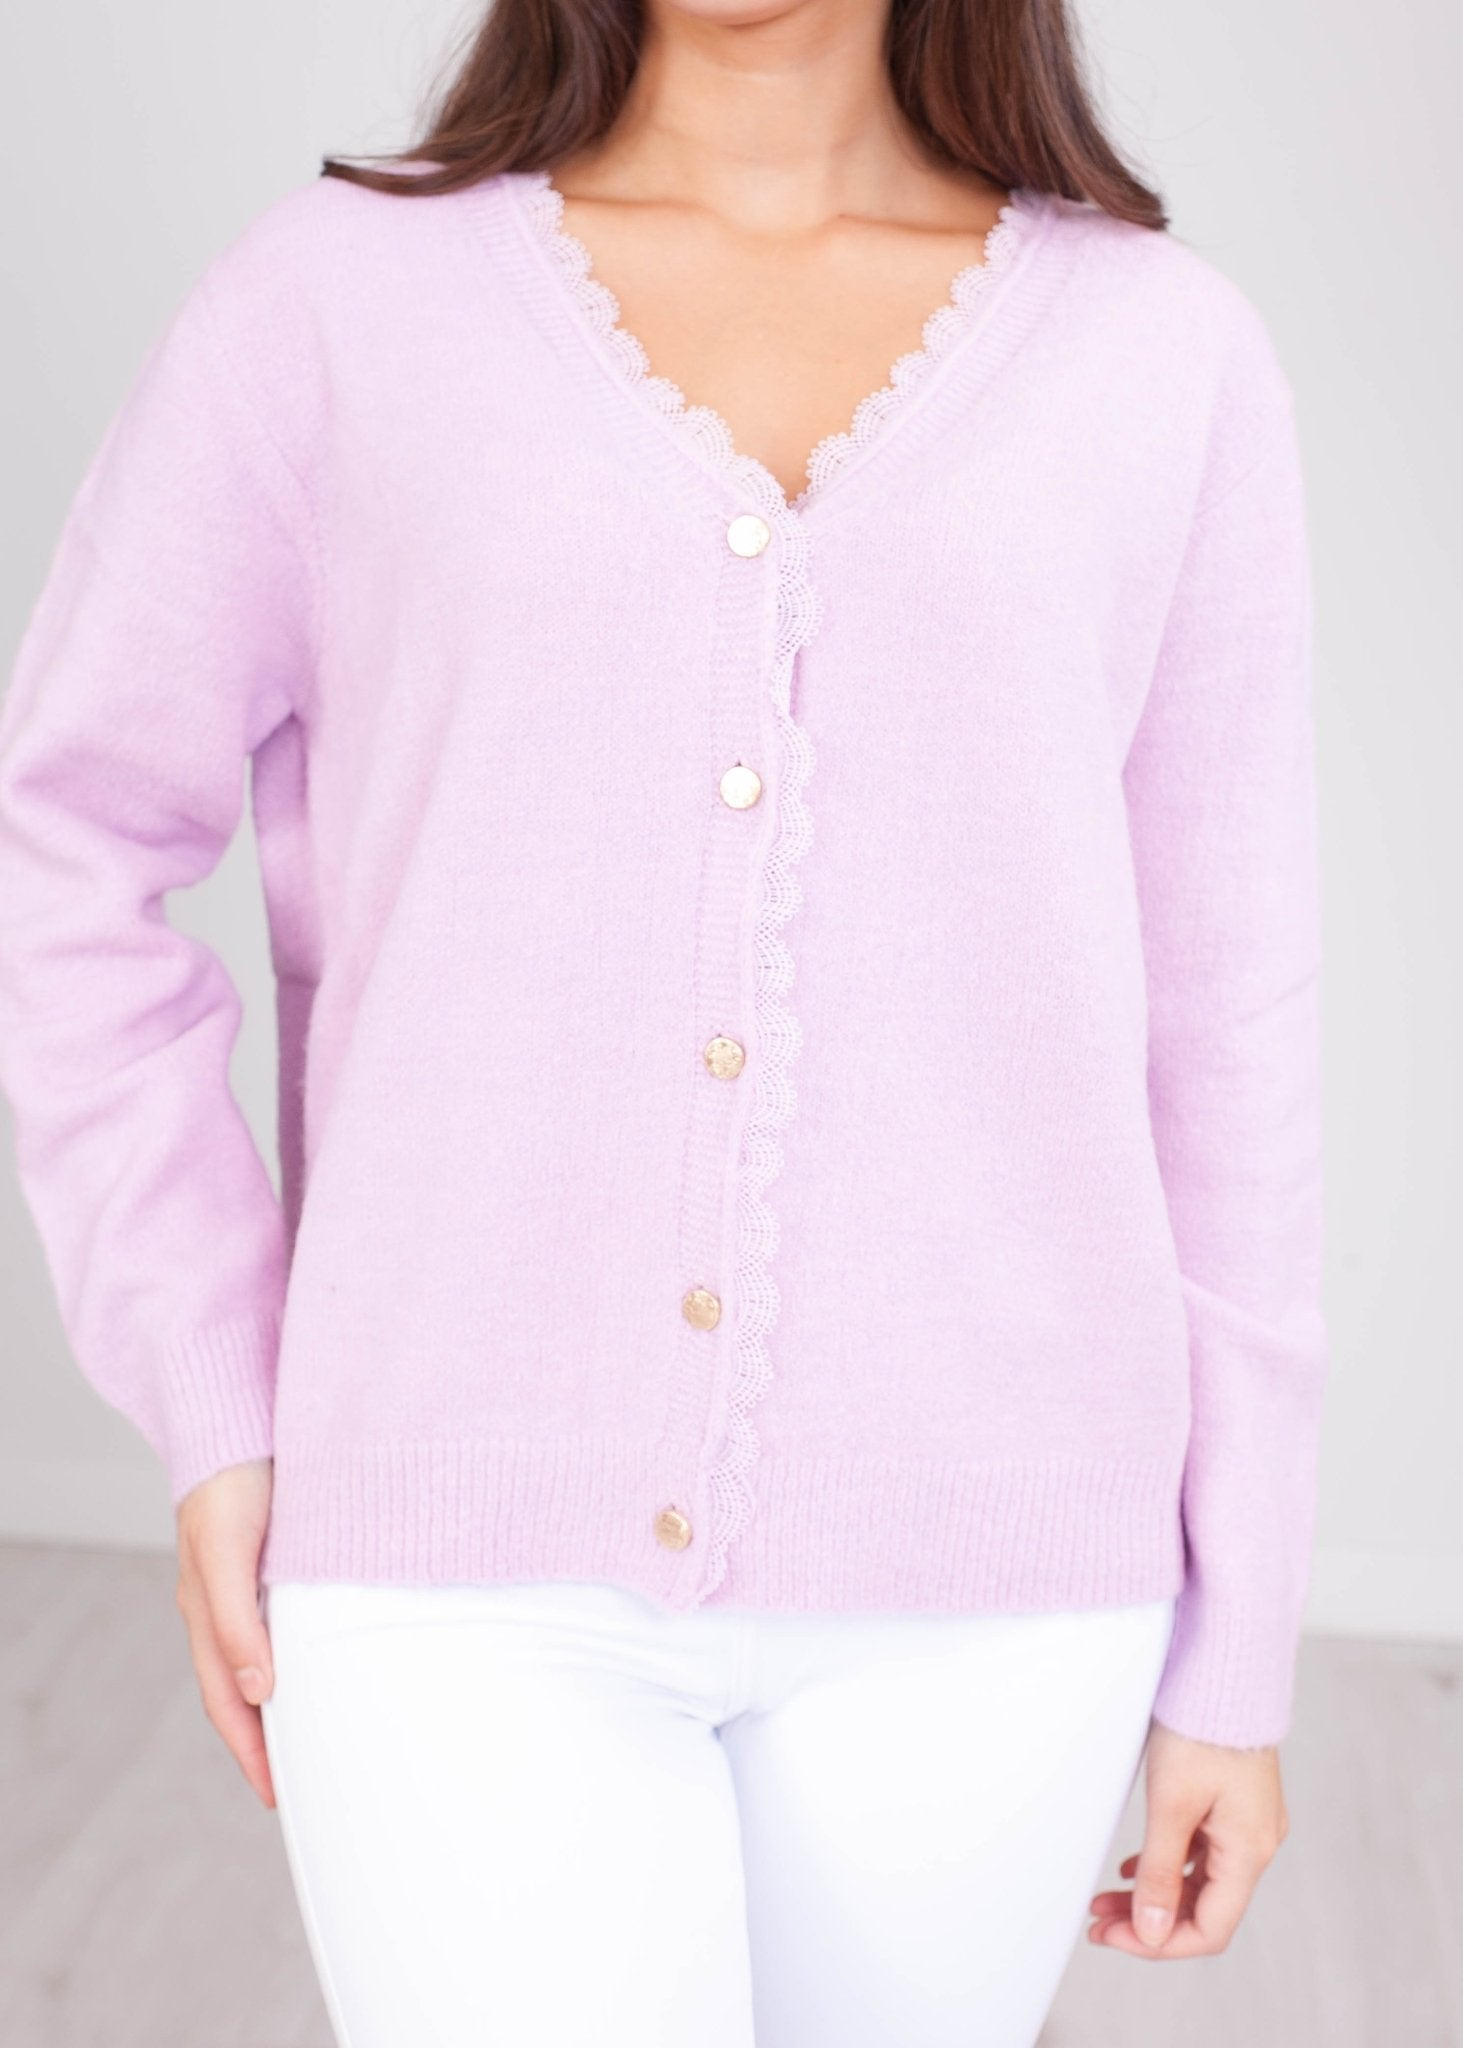 Cherie Lilac Lace Trim Cardigan - The Walk in Wardrobe